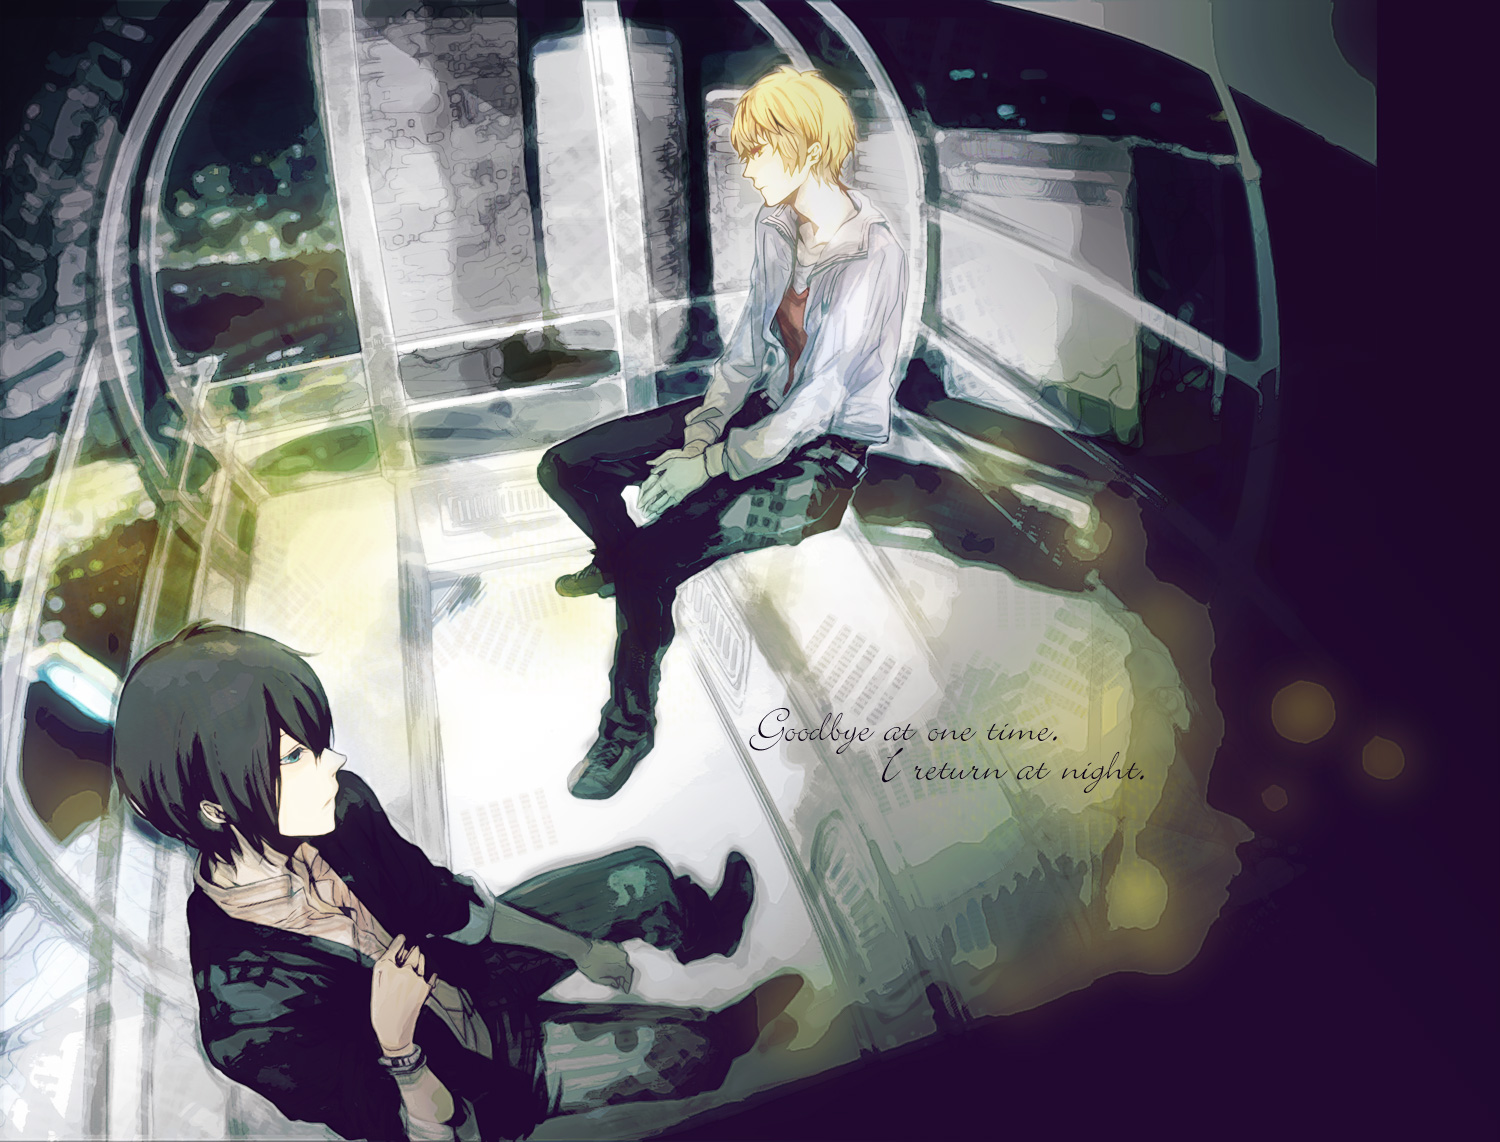 http://kazasou.files.wordpress.com/2011/08/konachan-com-76456-black_hair-blonde_hair-blue_eyes-durarara-heiwajima_kasuka-heiwajima_shizuo-short_hair-yellow_eyes.jpg